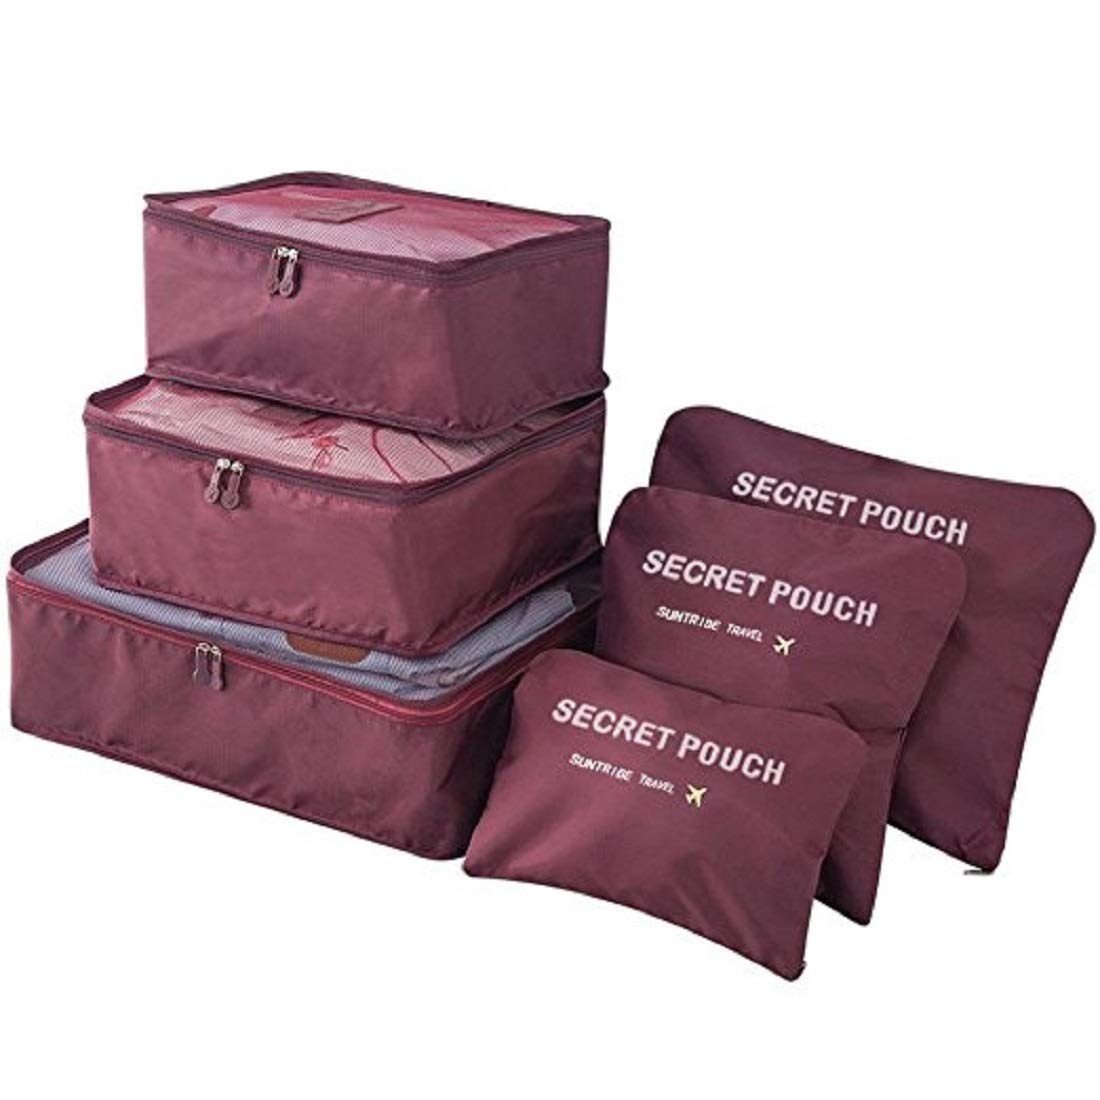 OxbOw Polyester & Nylon Packing Organizer (Maroon_Luggage Compression Pouches)